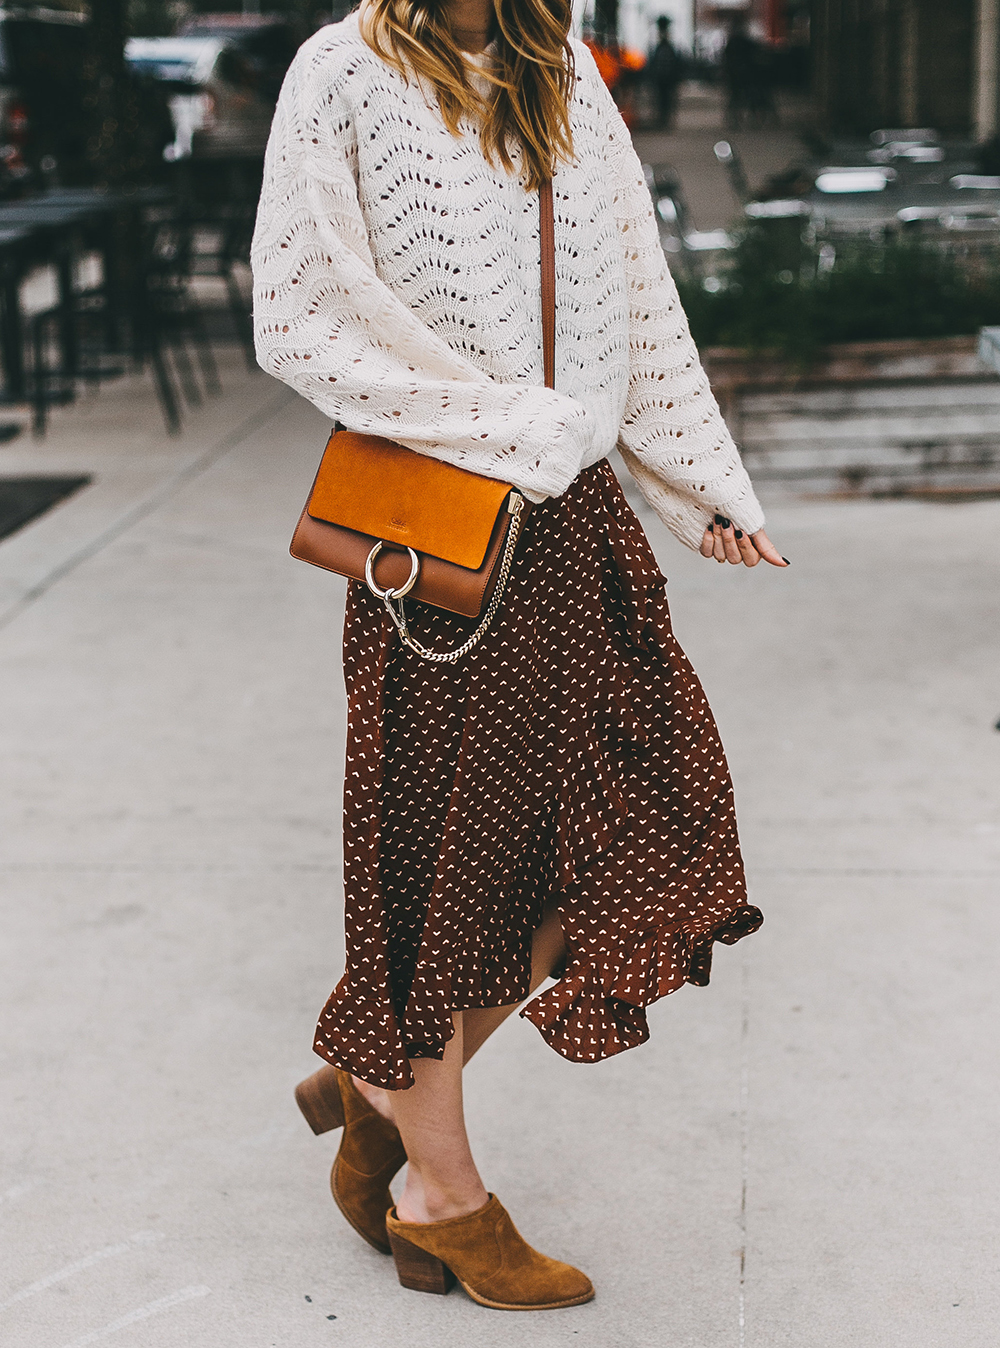 livvyland-olivia-watson-austin-texas-fashion-style-blogger-urban-outfitters-dress-layered-sweater-outfit-1